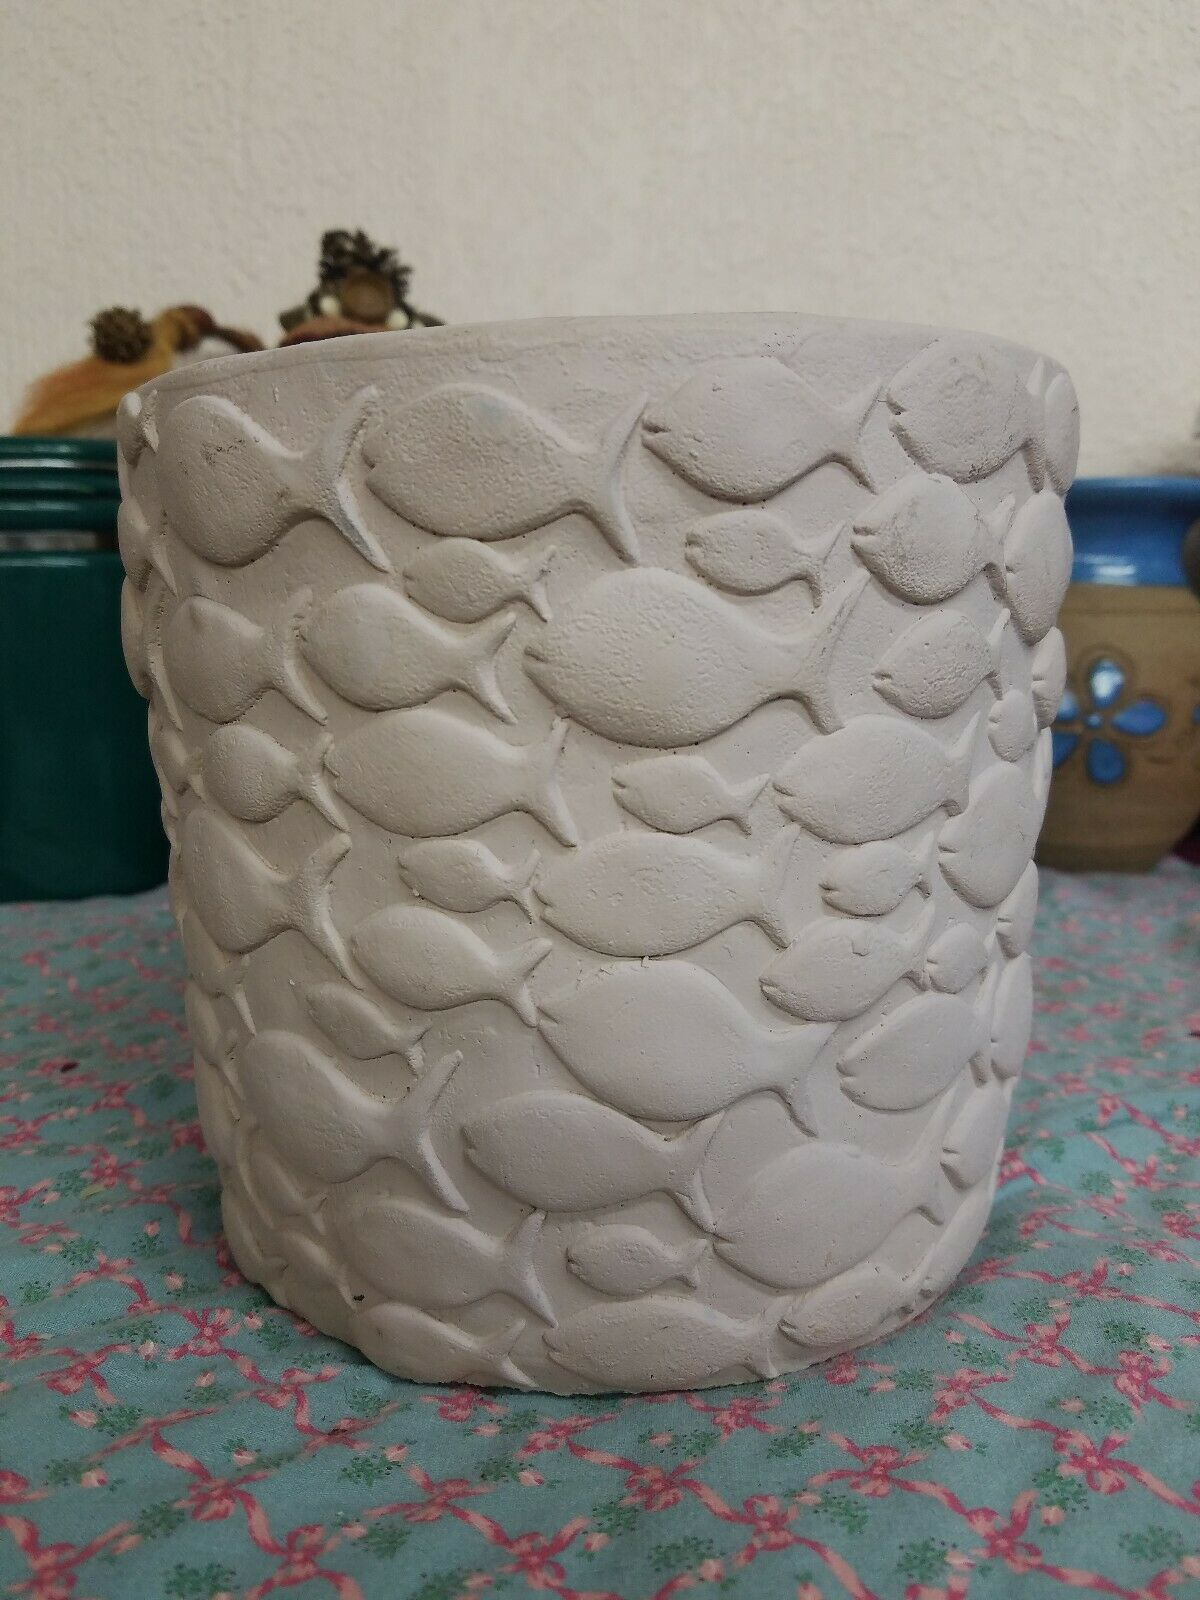 Planter Clay Pot Fish in scolds Big & små Unusual 6.5 tall 22 round